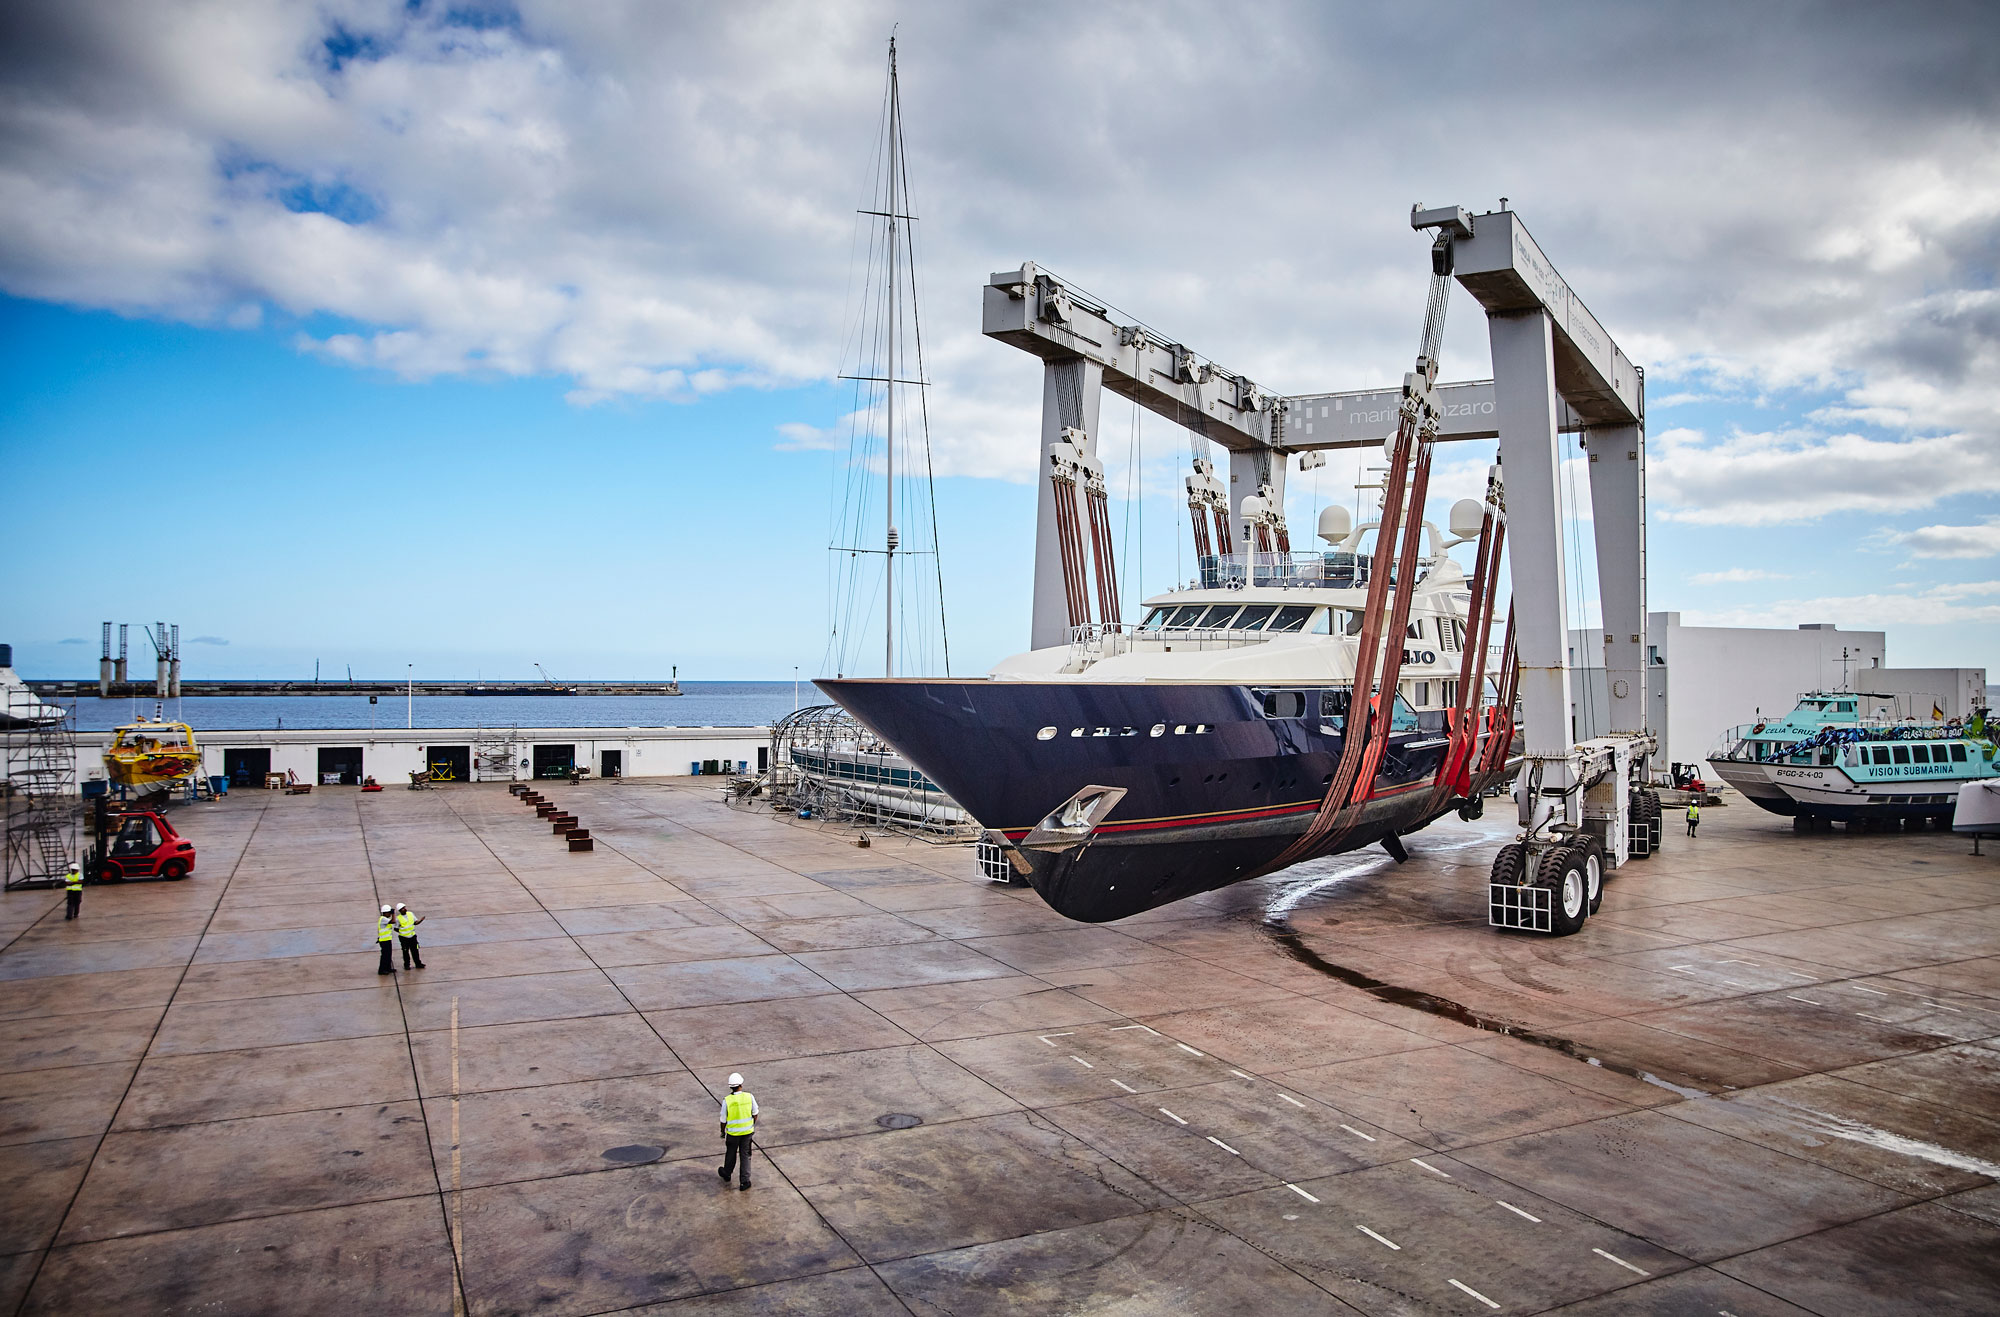 Very large blue and white yacht lifted out of water at Marina Lanzarote.